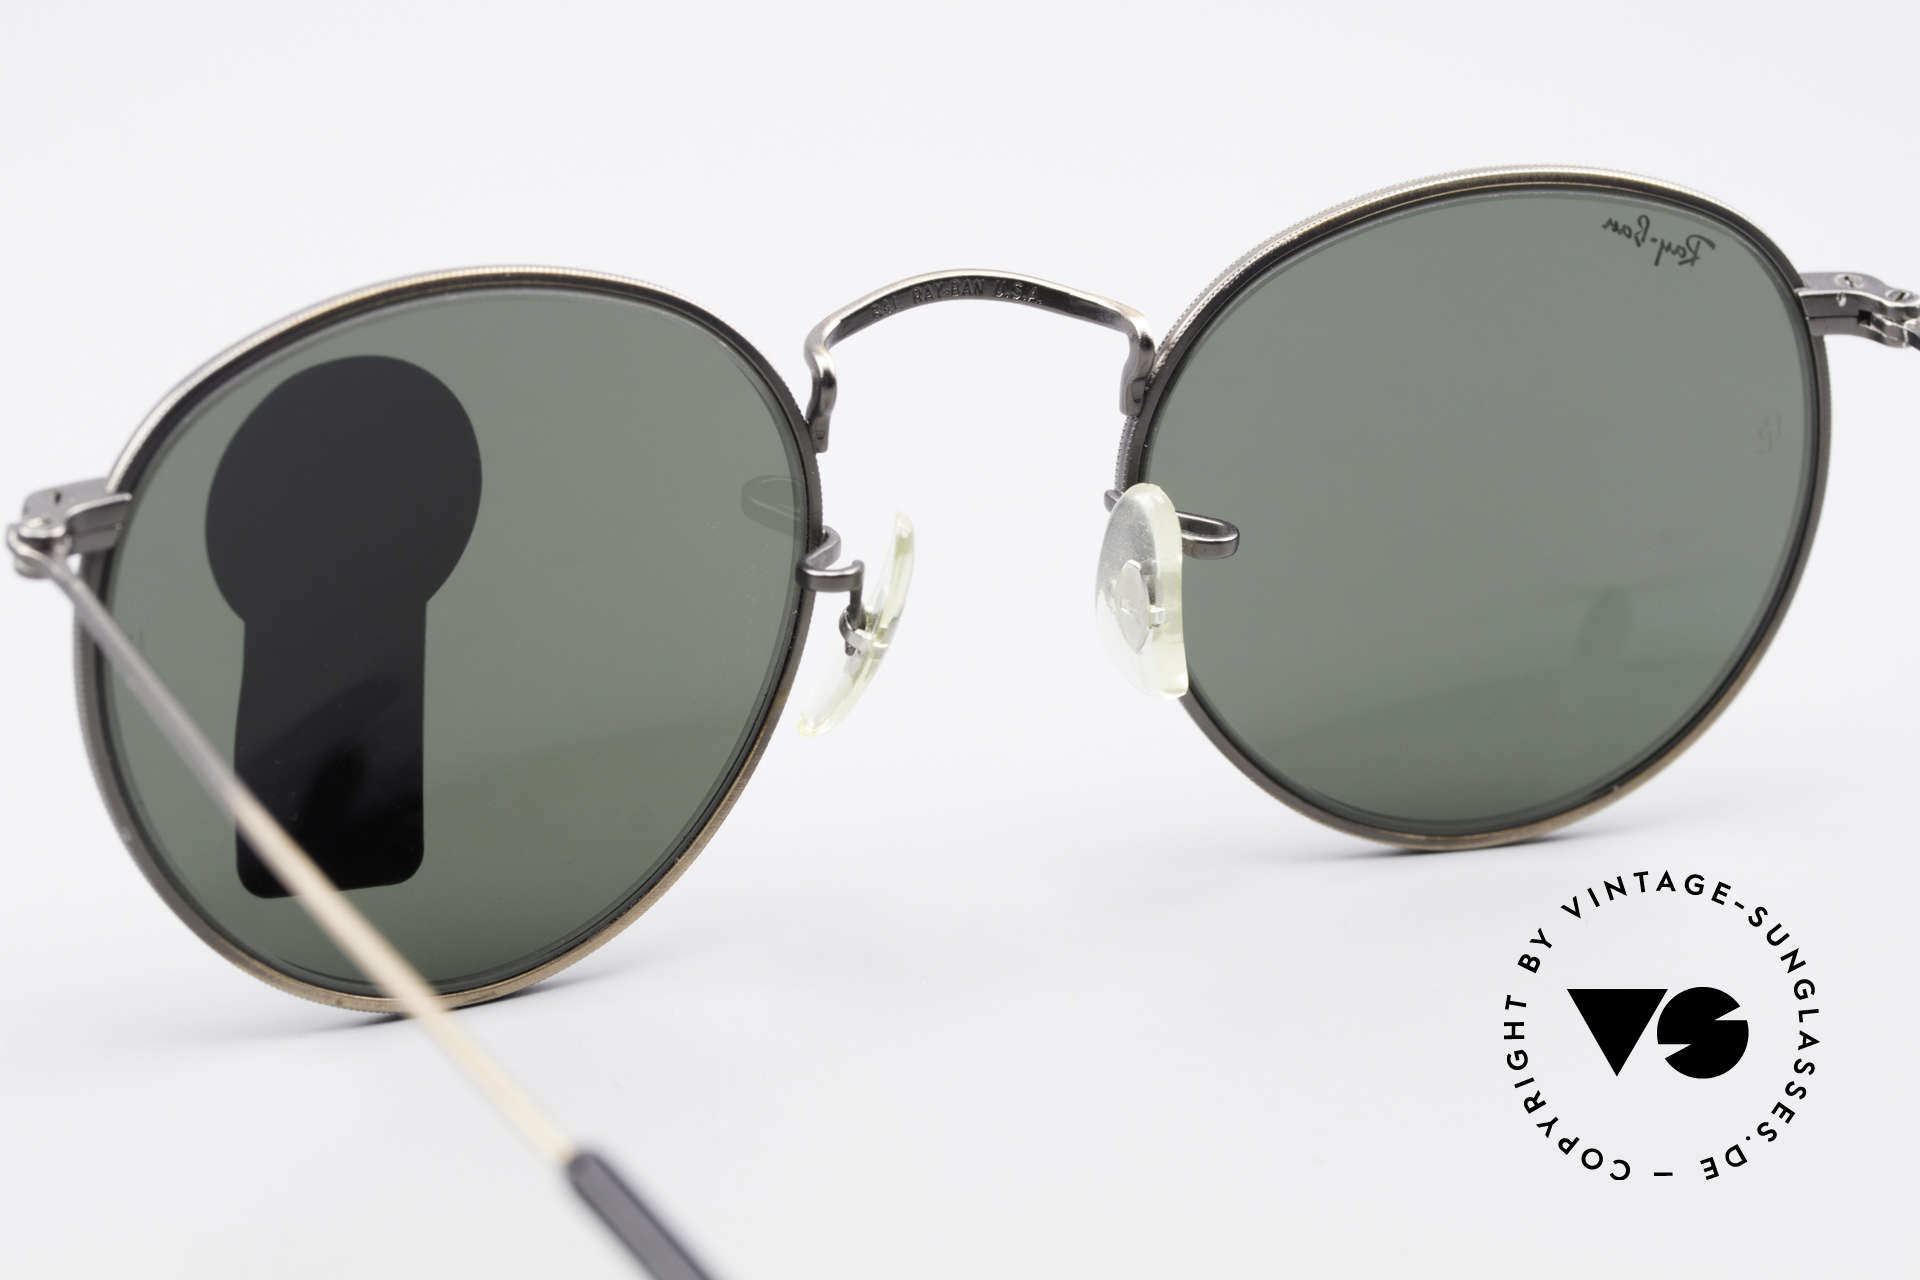 Ray Ban Round Metal 47 Small Round Vintage Shades, NO RETRO EYEWEAR, but a rare old 1980's Original!, Made for Men and Women